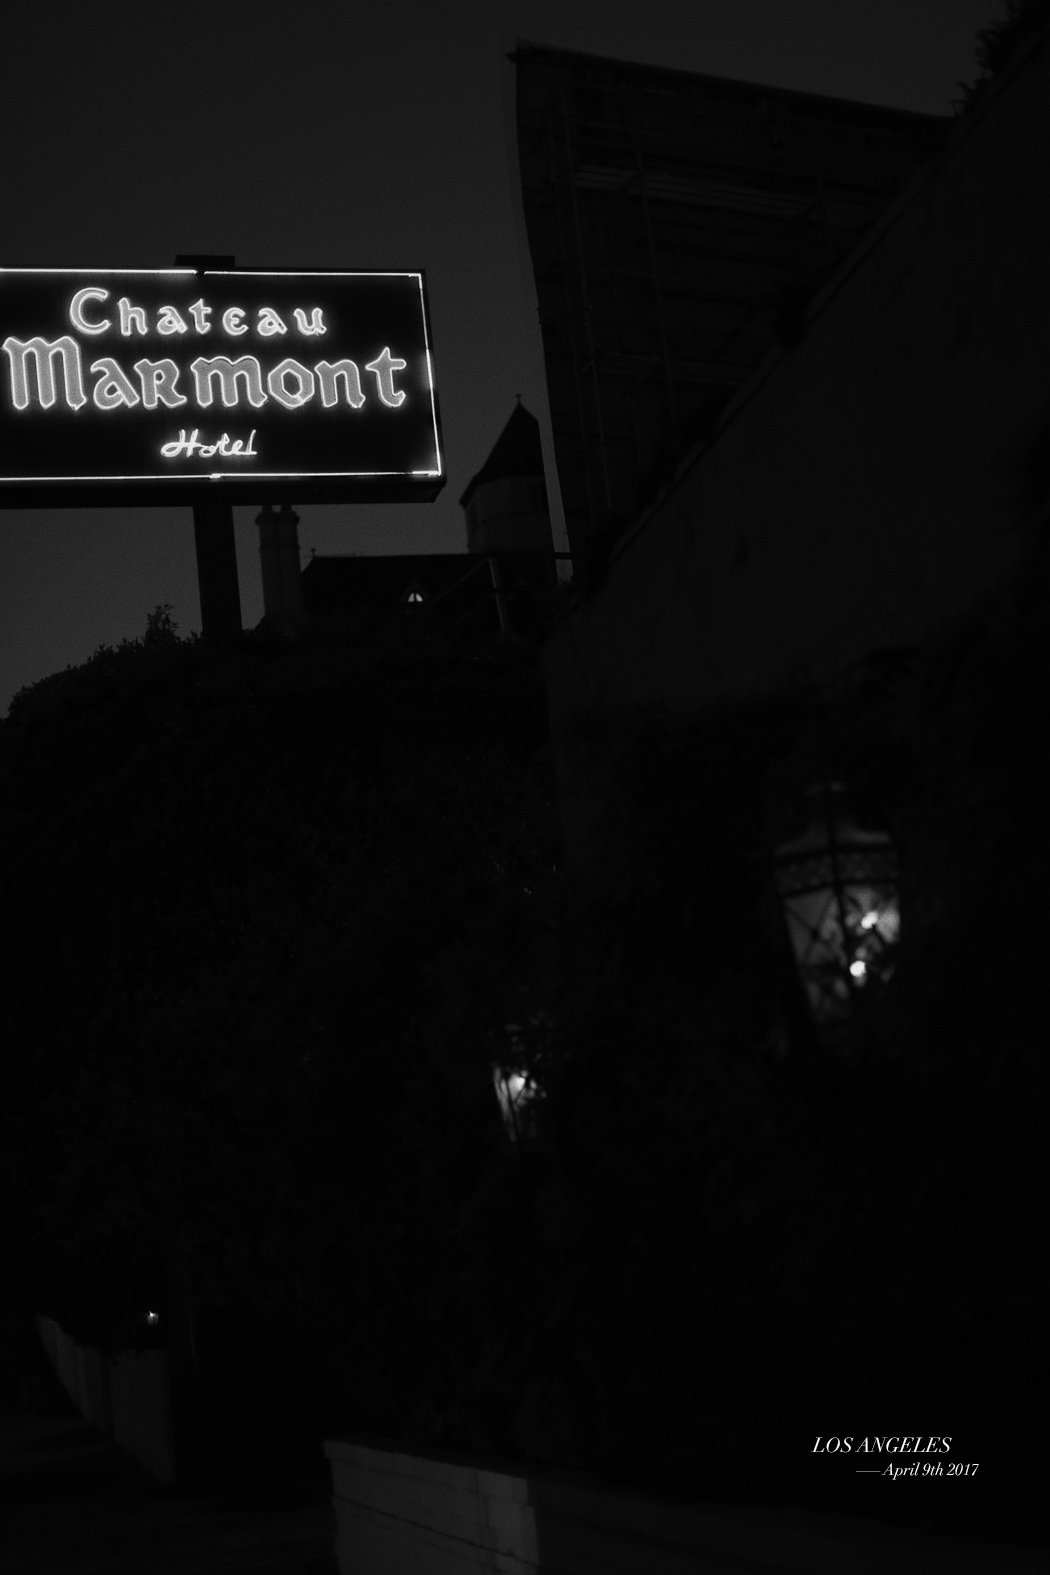 CHATEAU MARMONT - Hollywood, LOS ANGELES - Fiona Dinkelbach